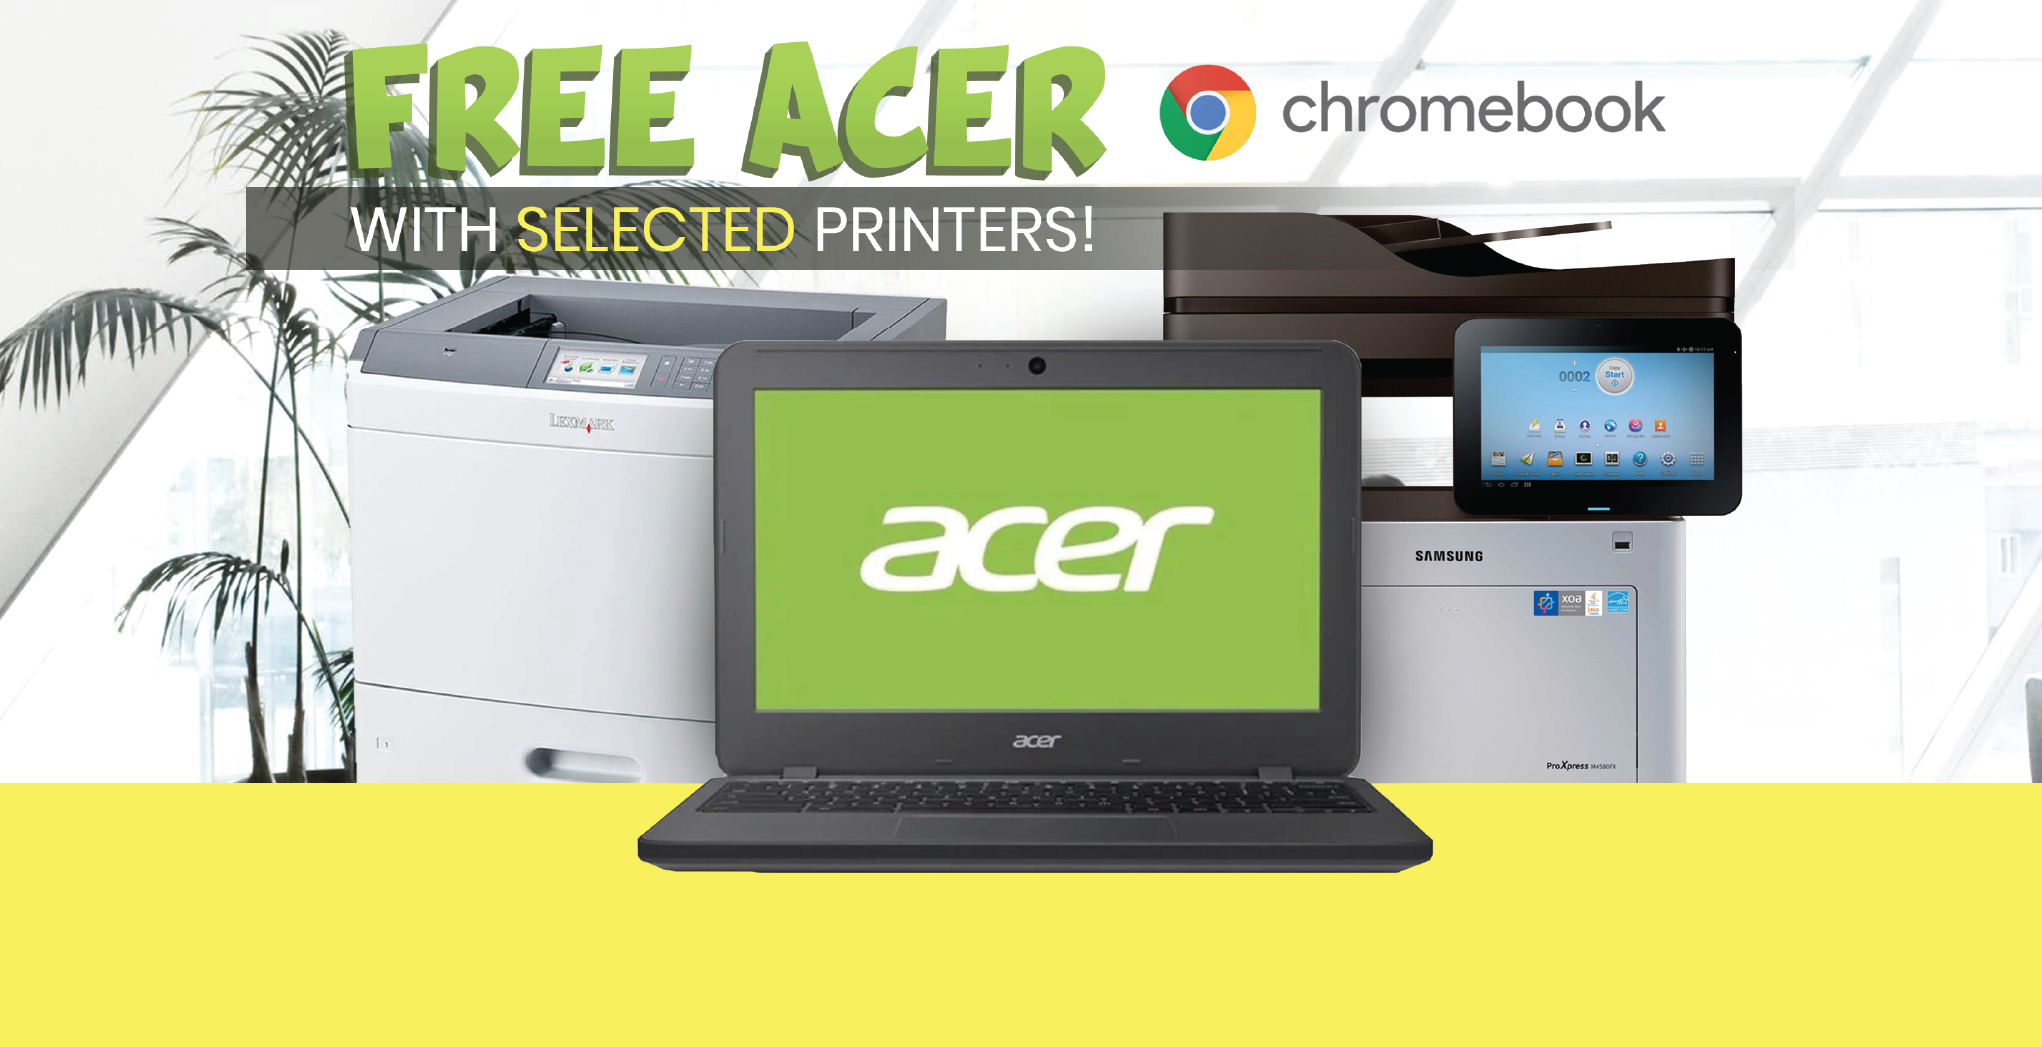 Free Acer Chromebook with Selected Printers